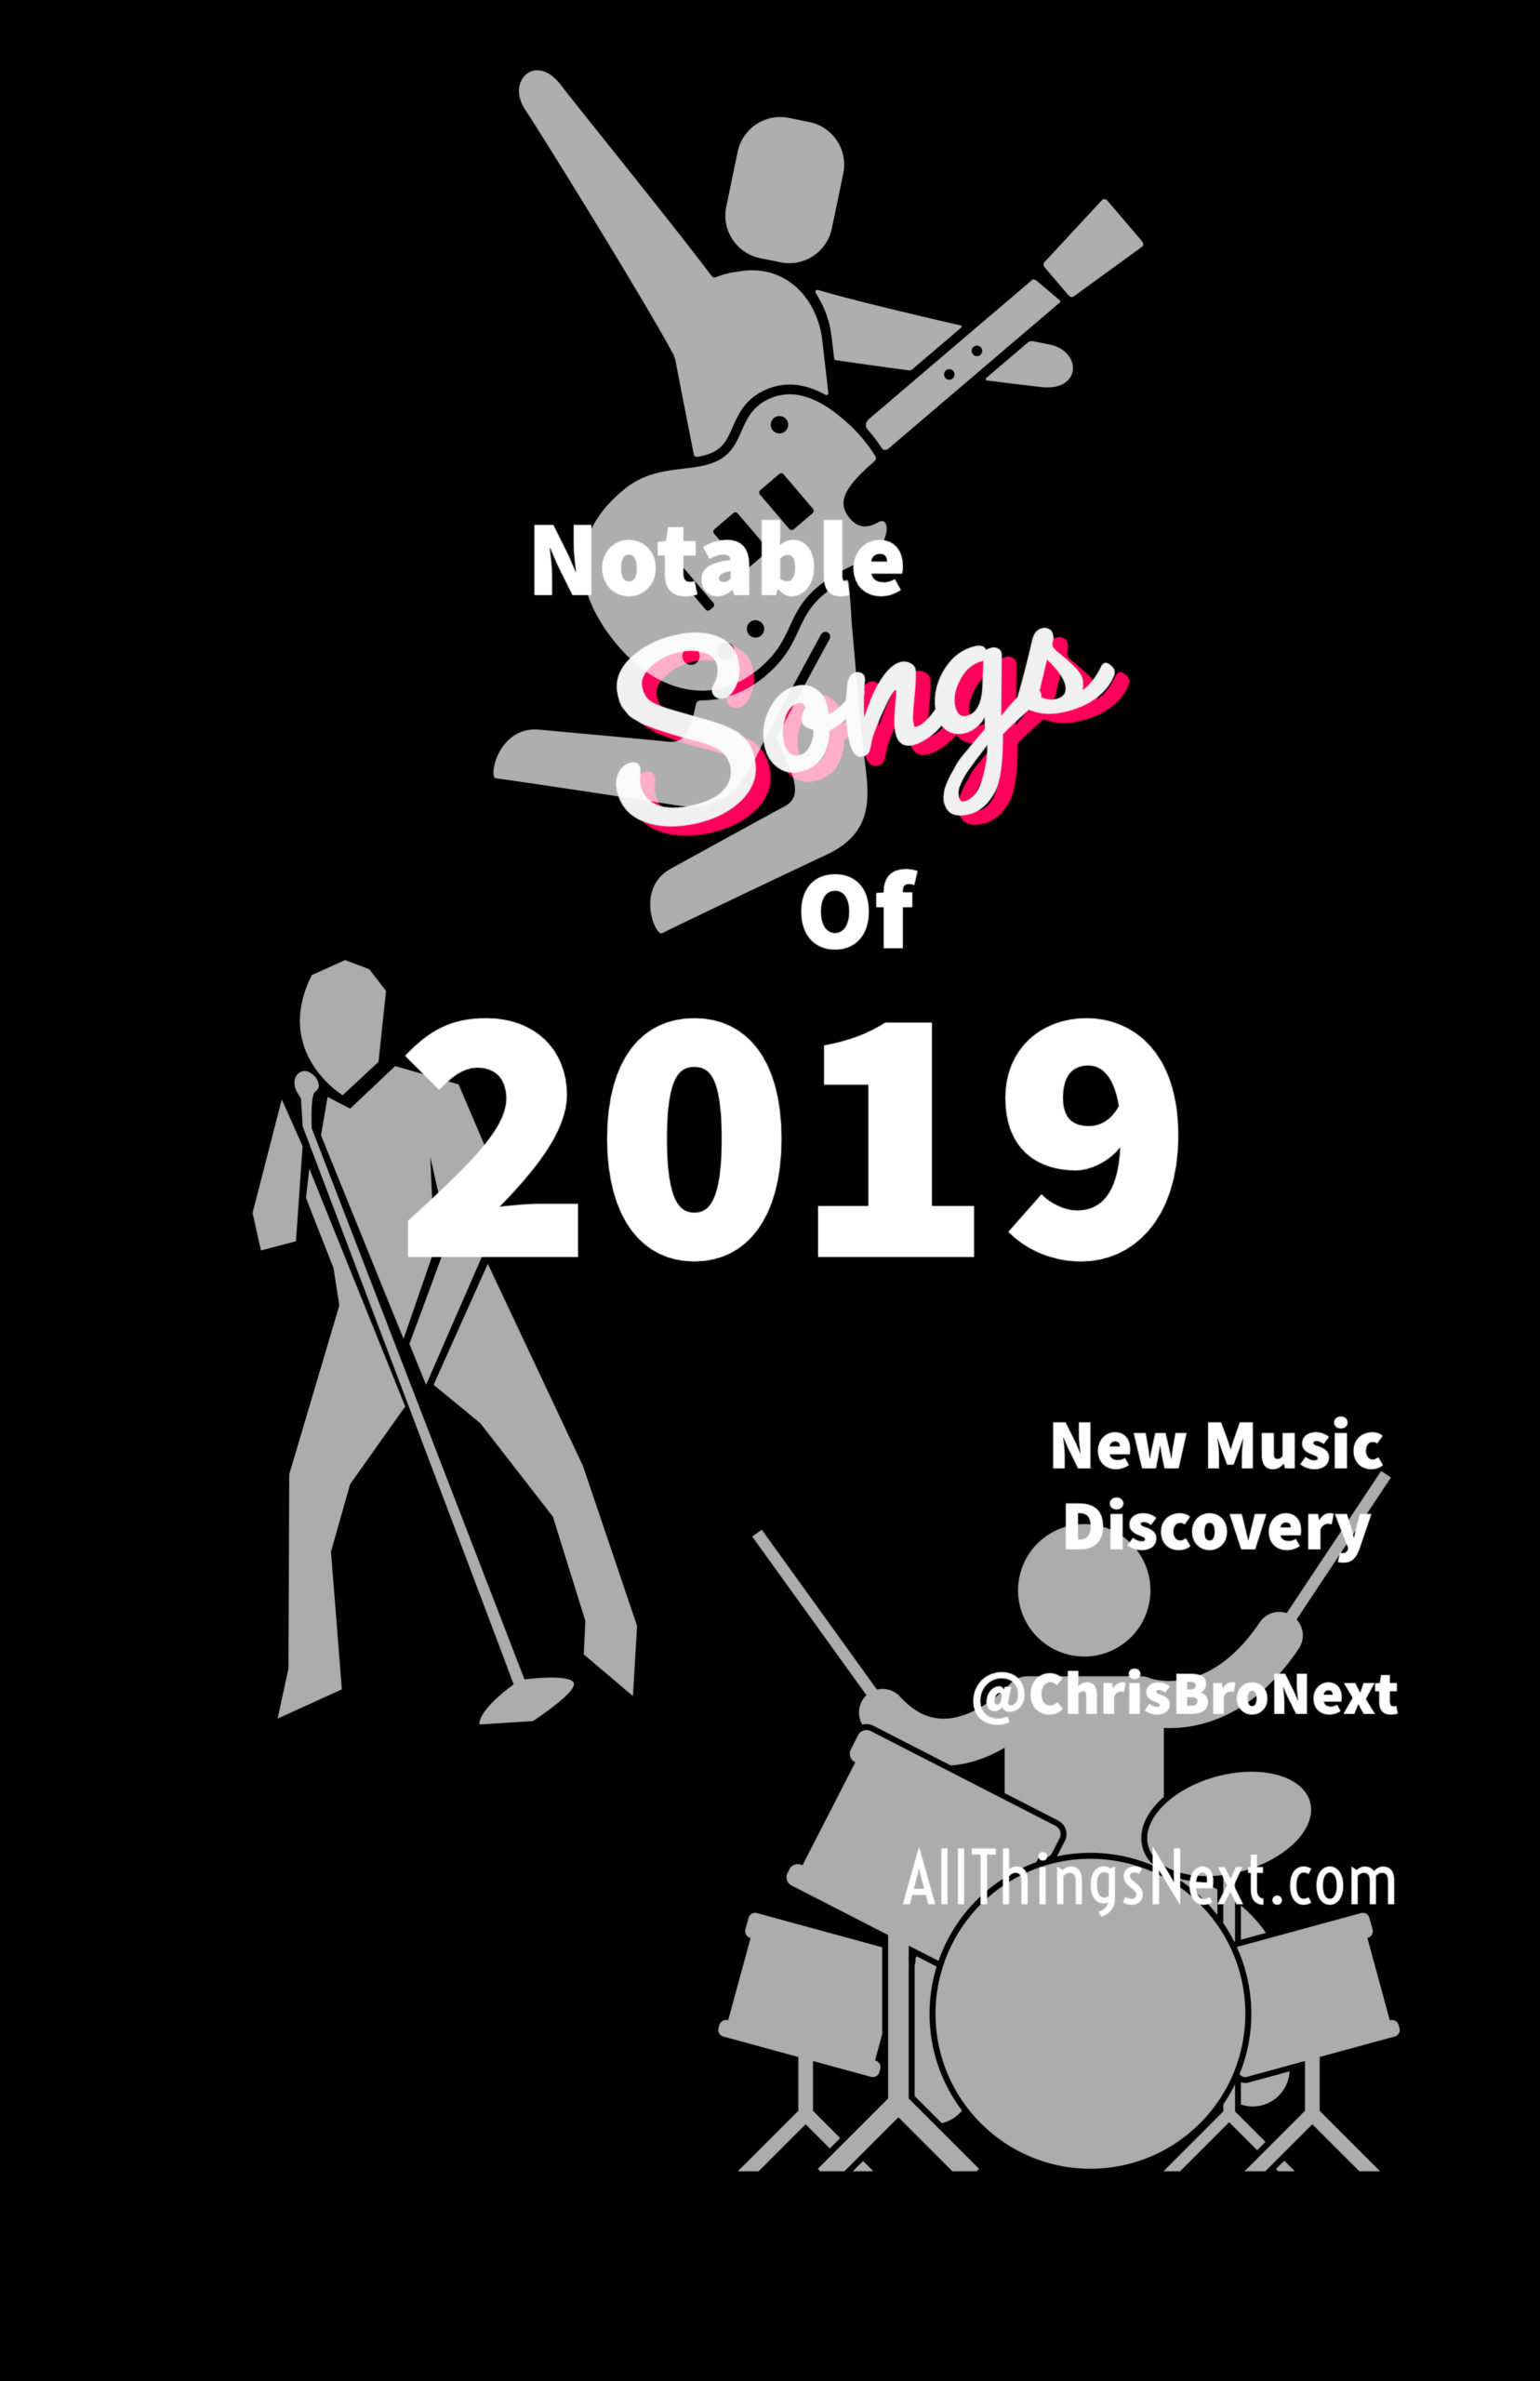 Next Week 715 Our Notable Songs of 2019 week 4 of 4